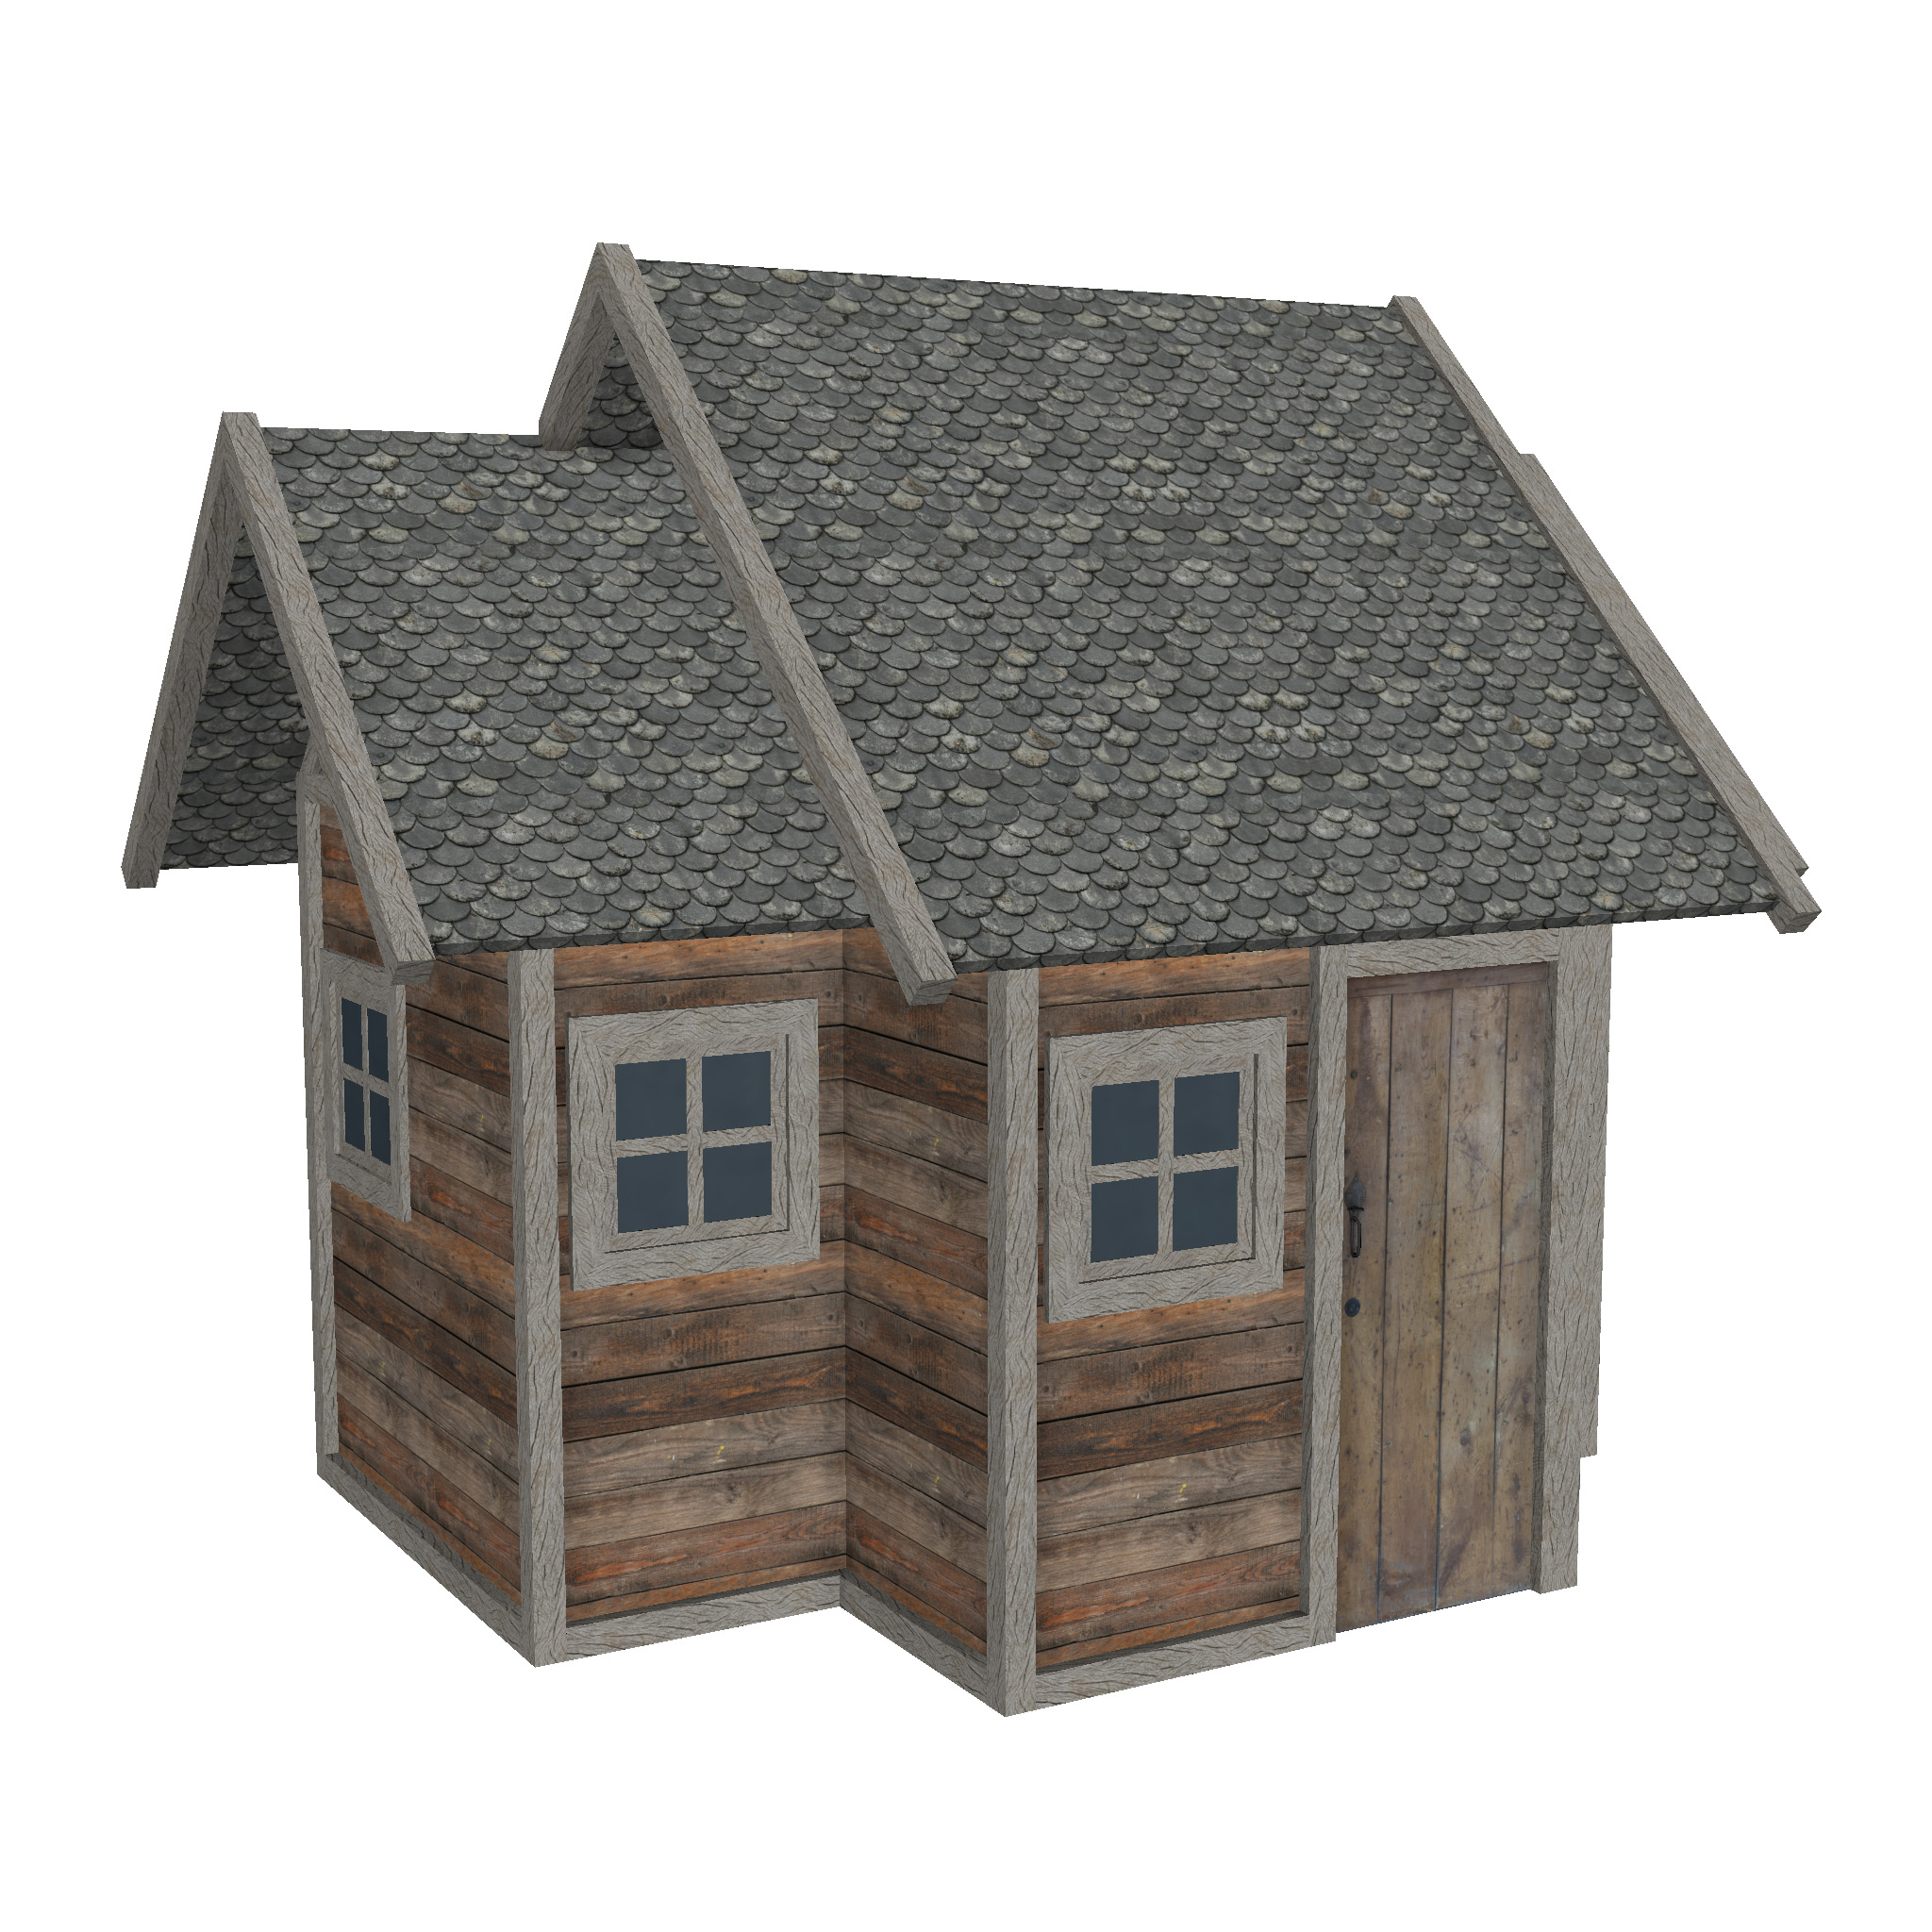 modular wood house set 3d model fbx ma mb 271461